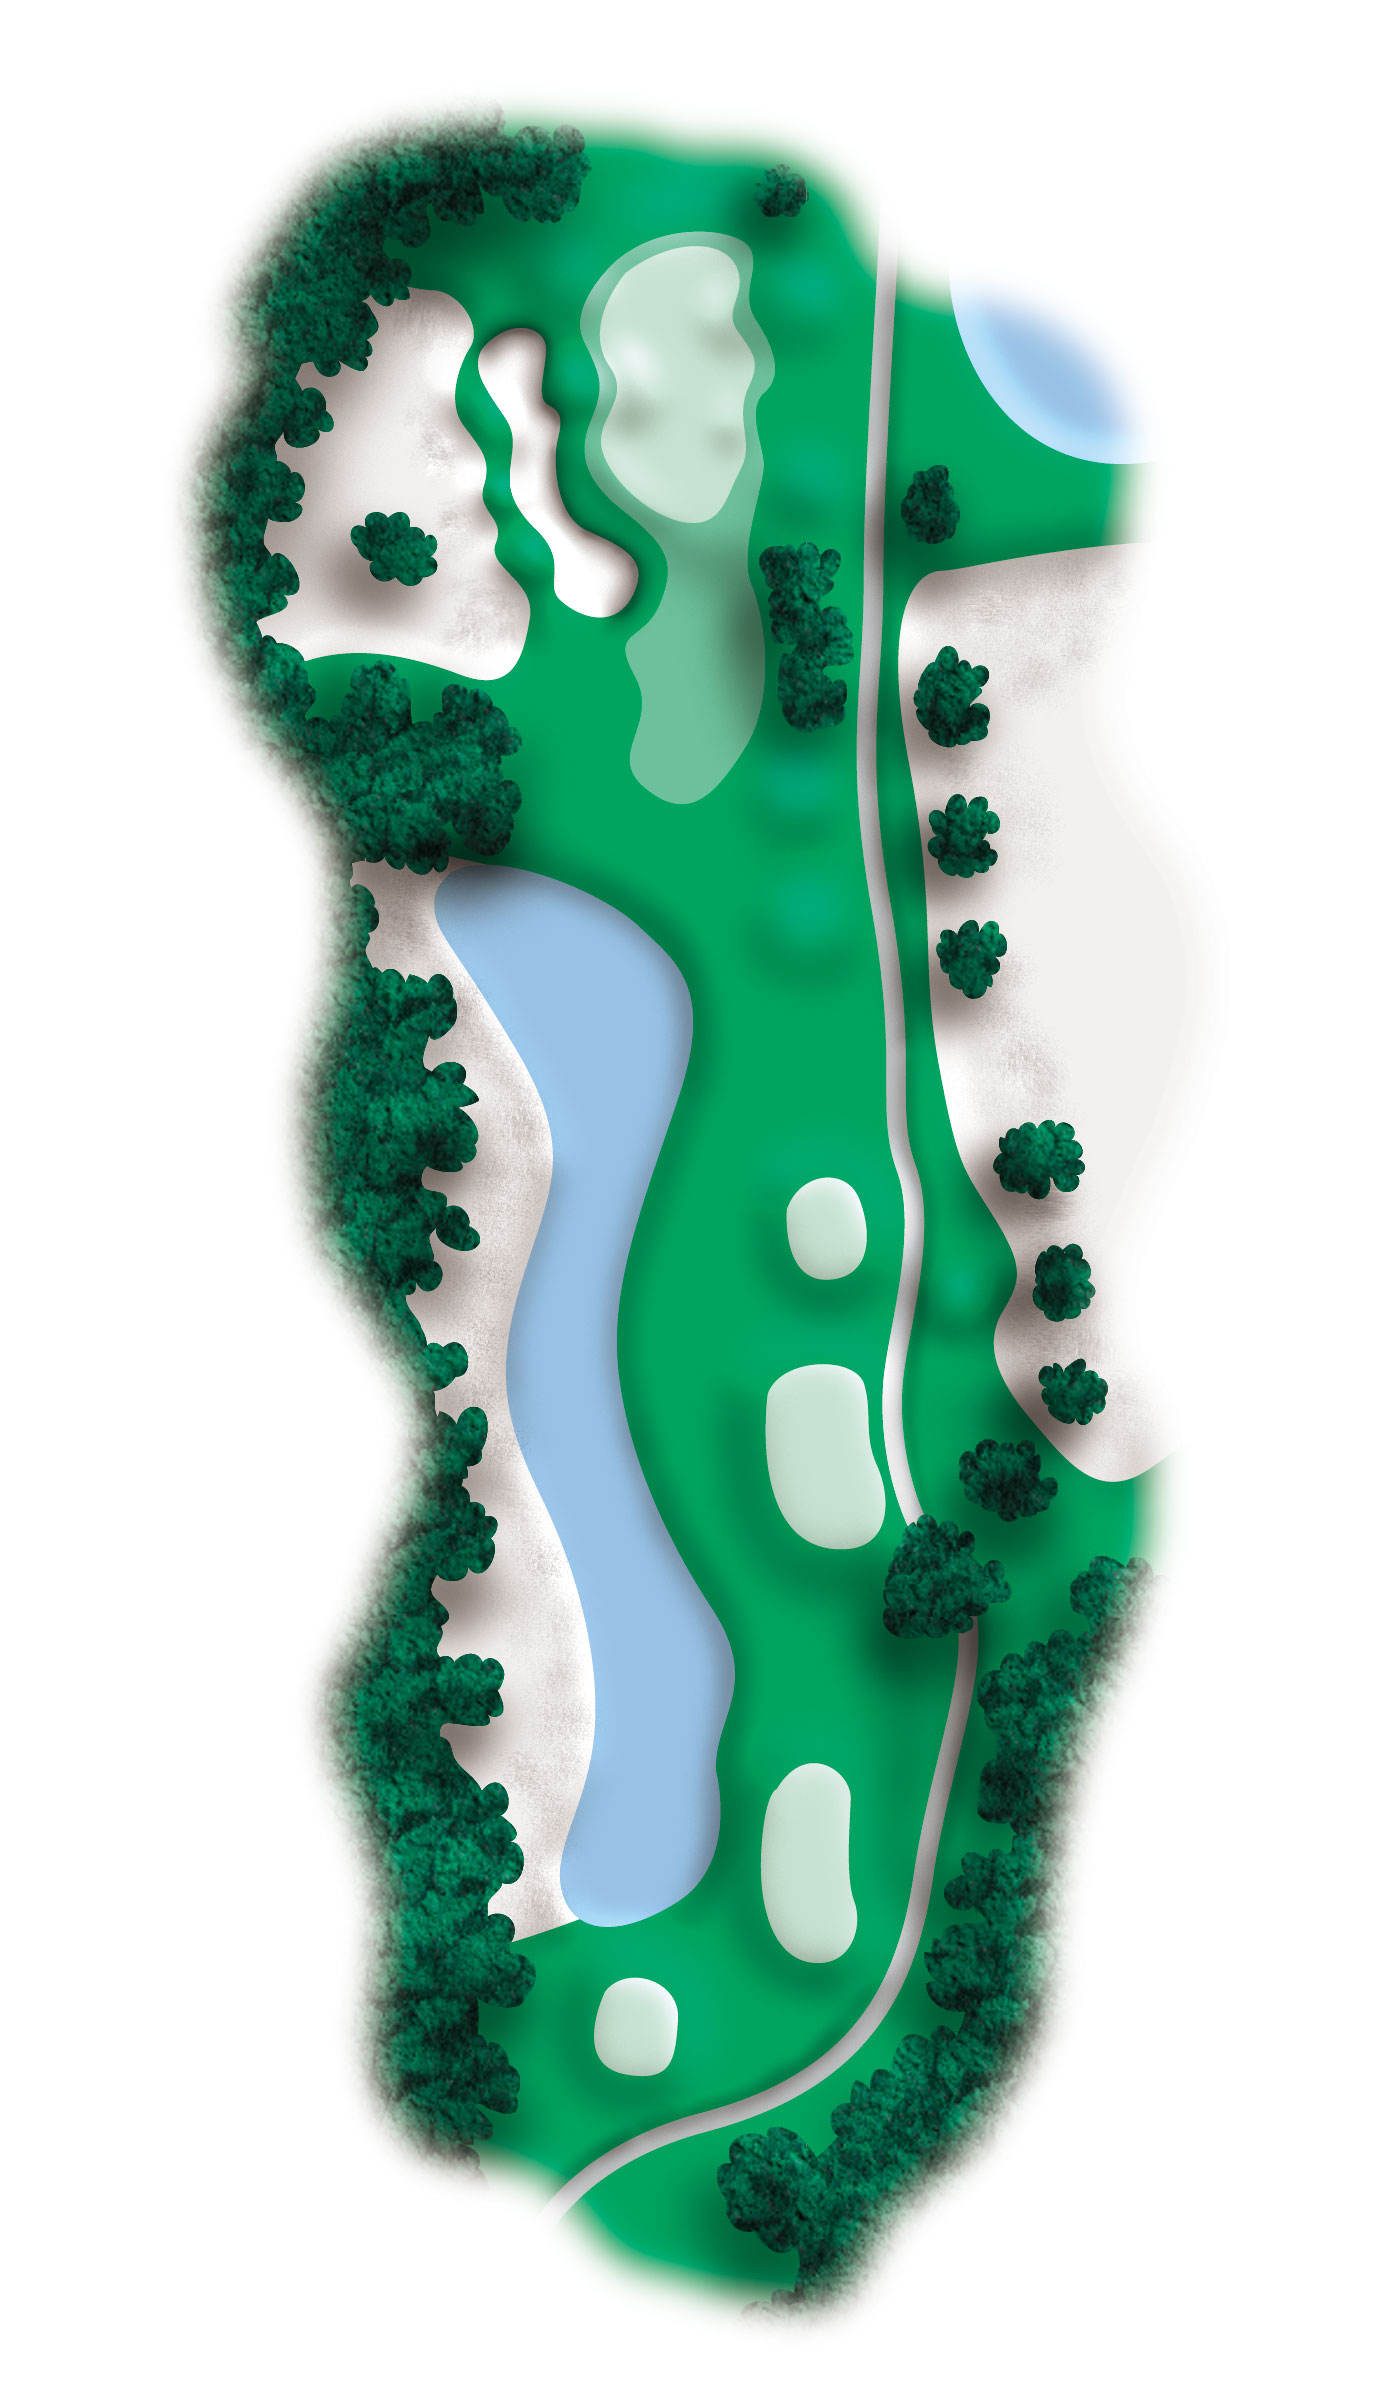 hole 3 diagram